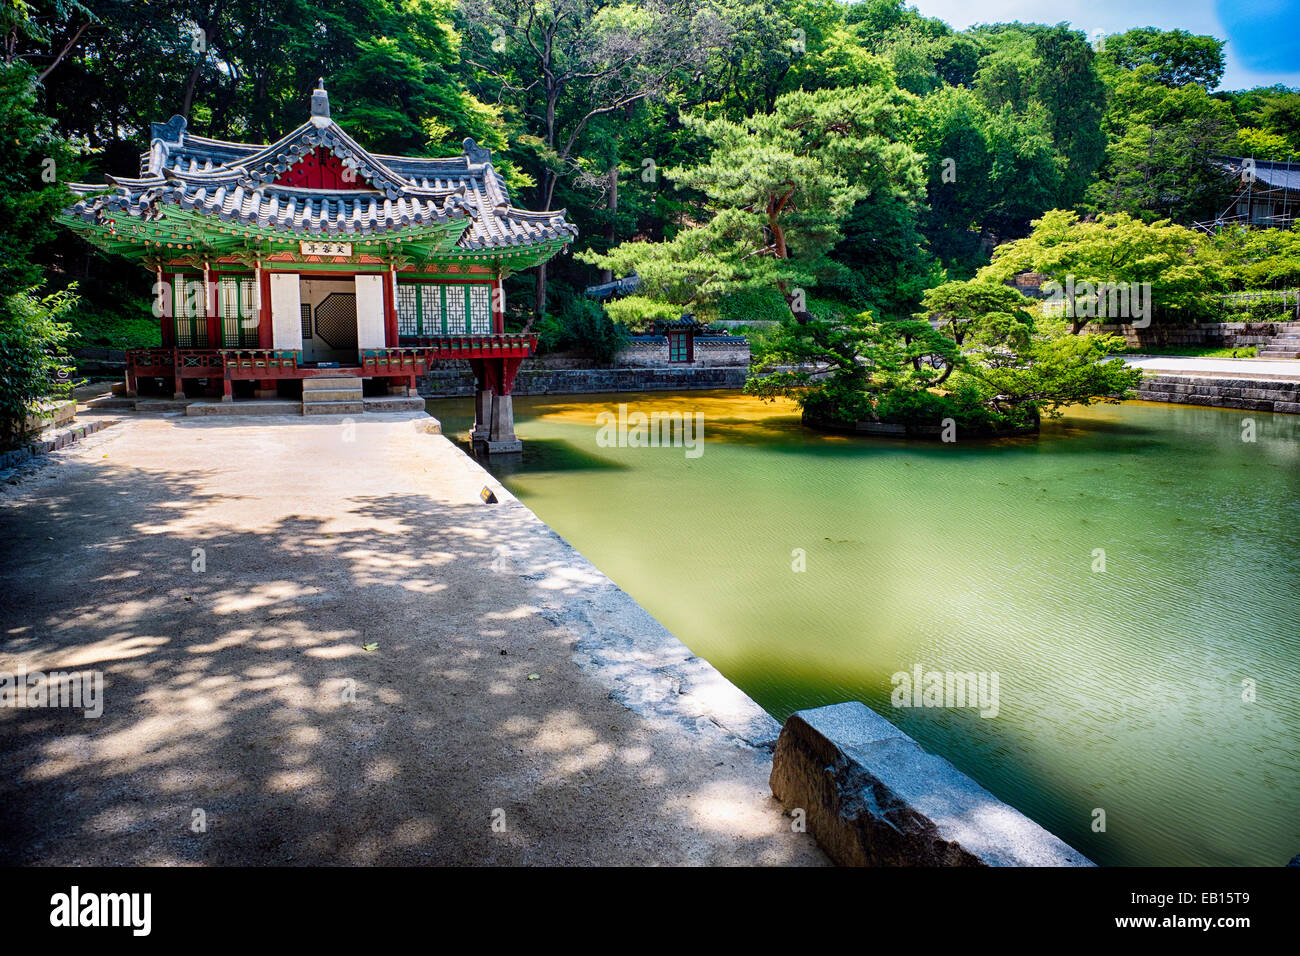 Buyongjeong Pavilion with a Pond, Huwon Area, Secret Garden, Changdeokgung Palace Complex, Seoul, South Korea - Stock Image